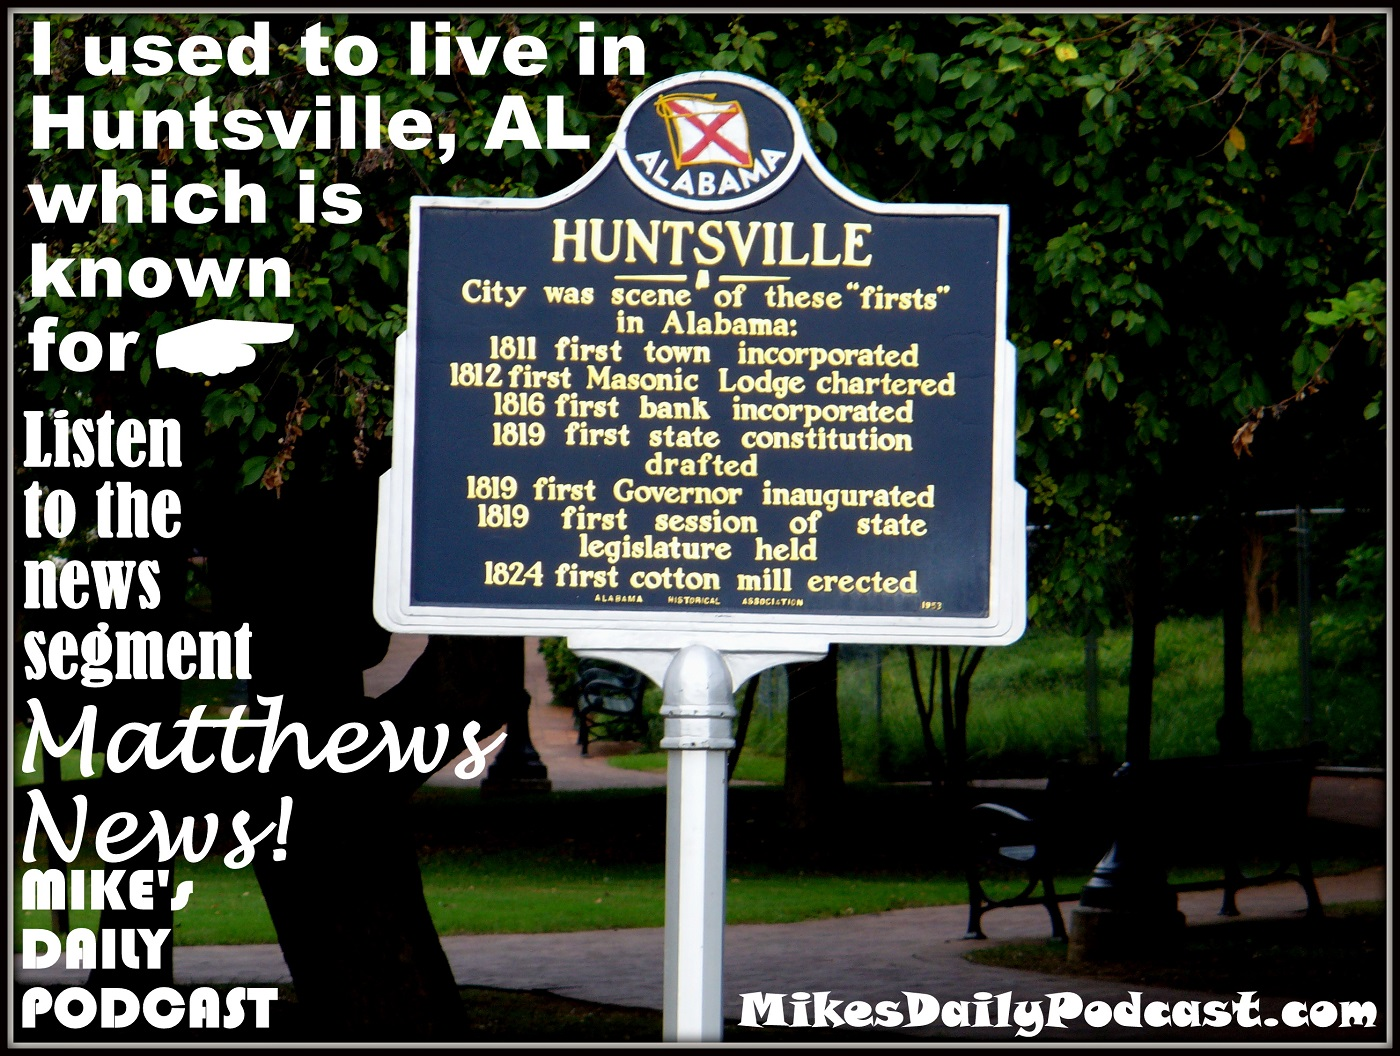 MIKEs DAILY PODCAST 7-31-15 Huntsville Alabama